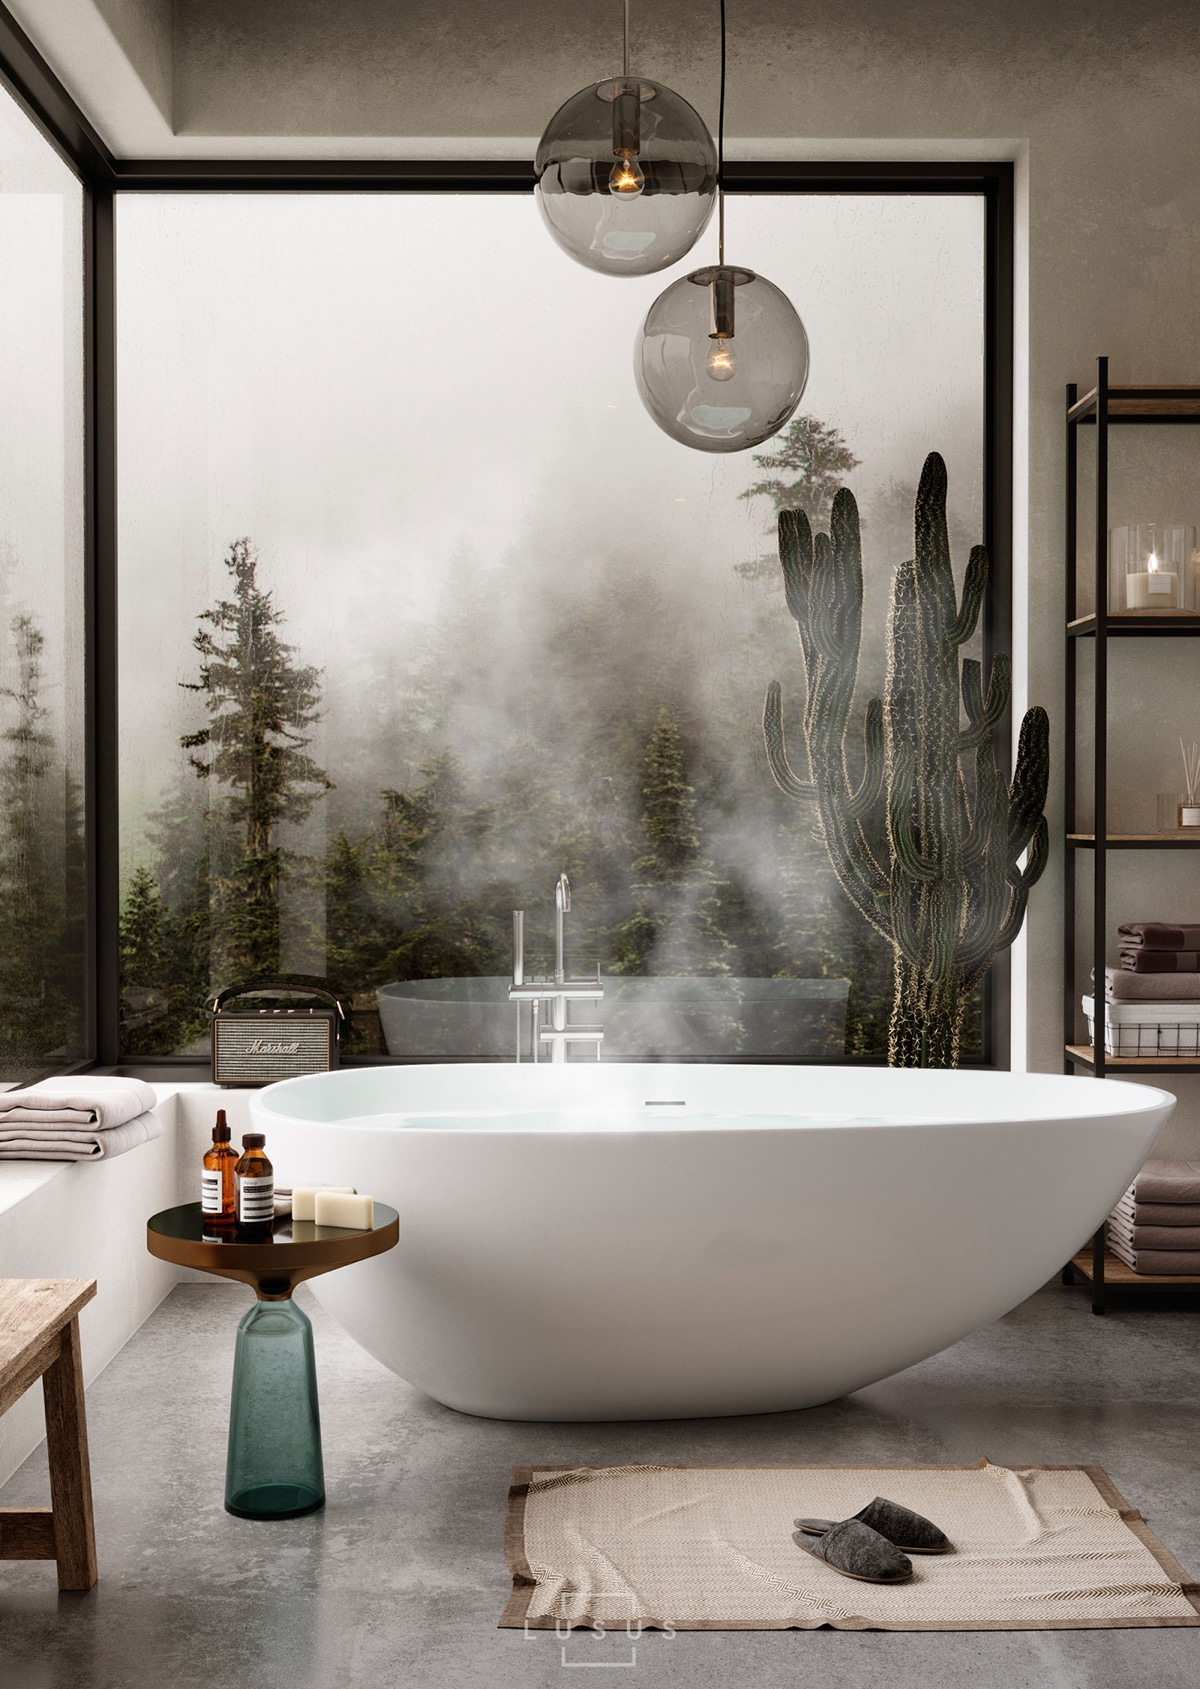 Interior Design Ideas & 50 Luxury Bathrooms And Tips You Can Copy From Them